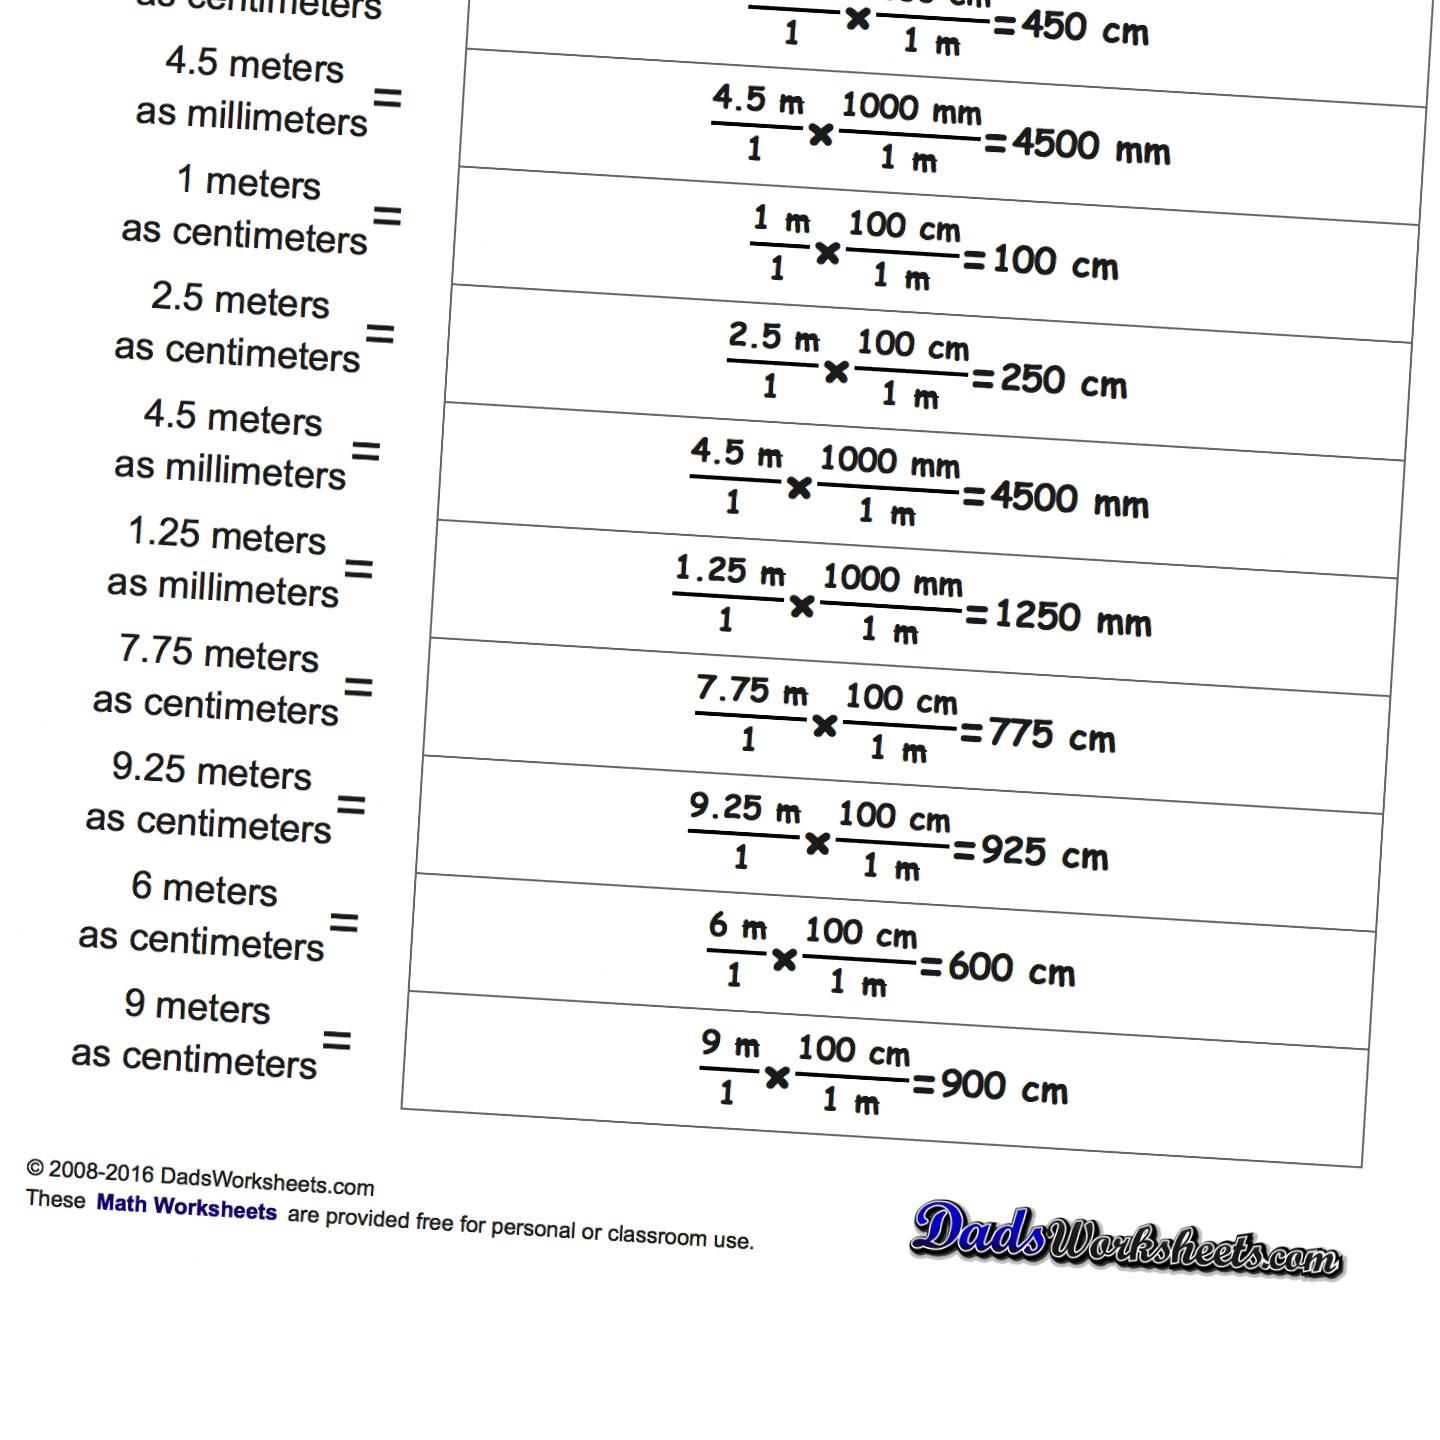 Worksheets Metric Conversion Word Problems Worksheet metric si unit conversions this page contains links to free math conversions